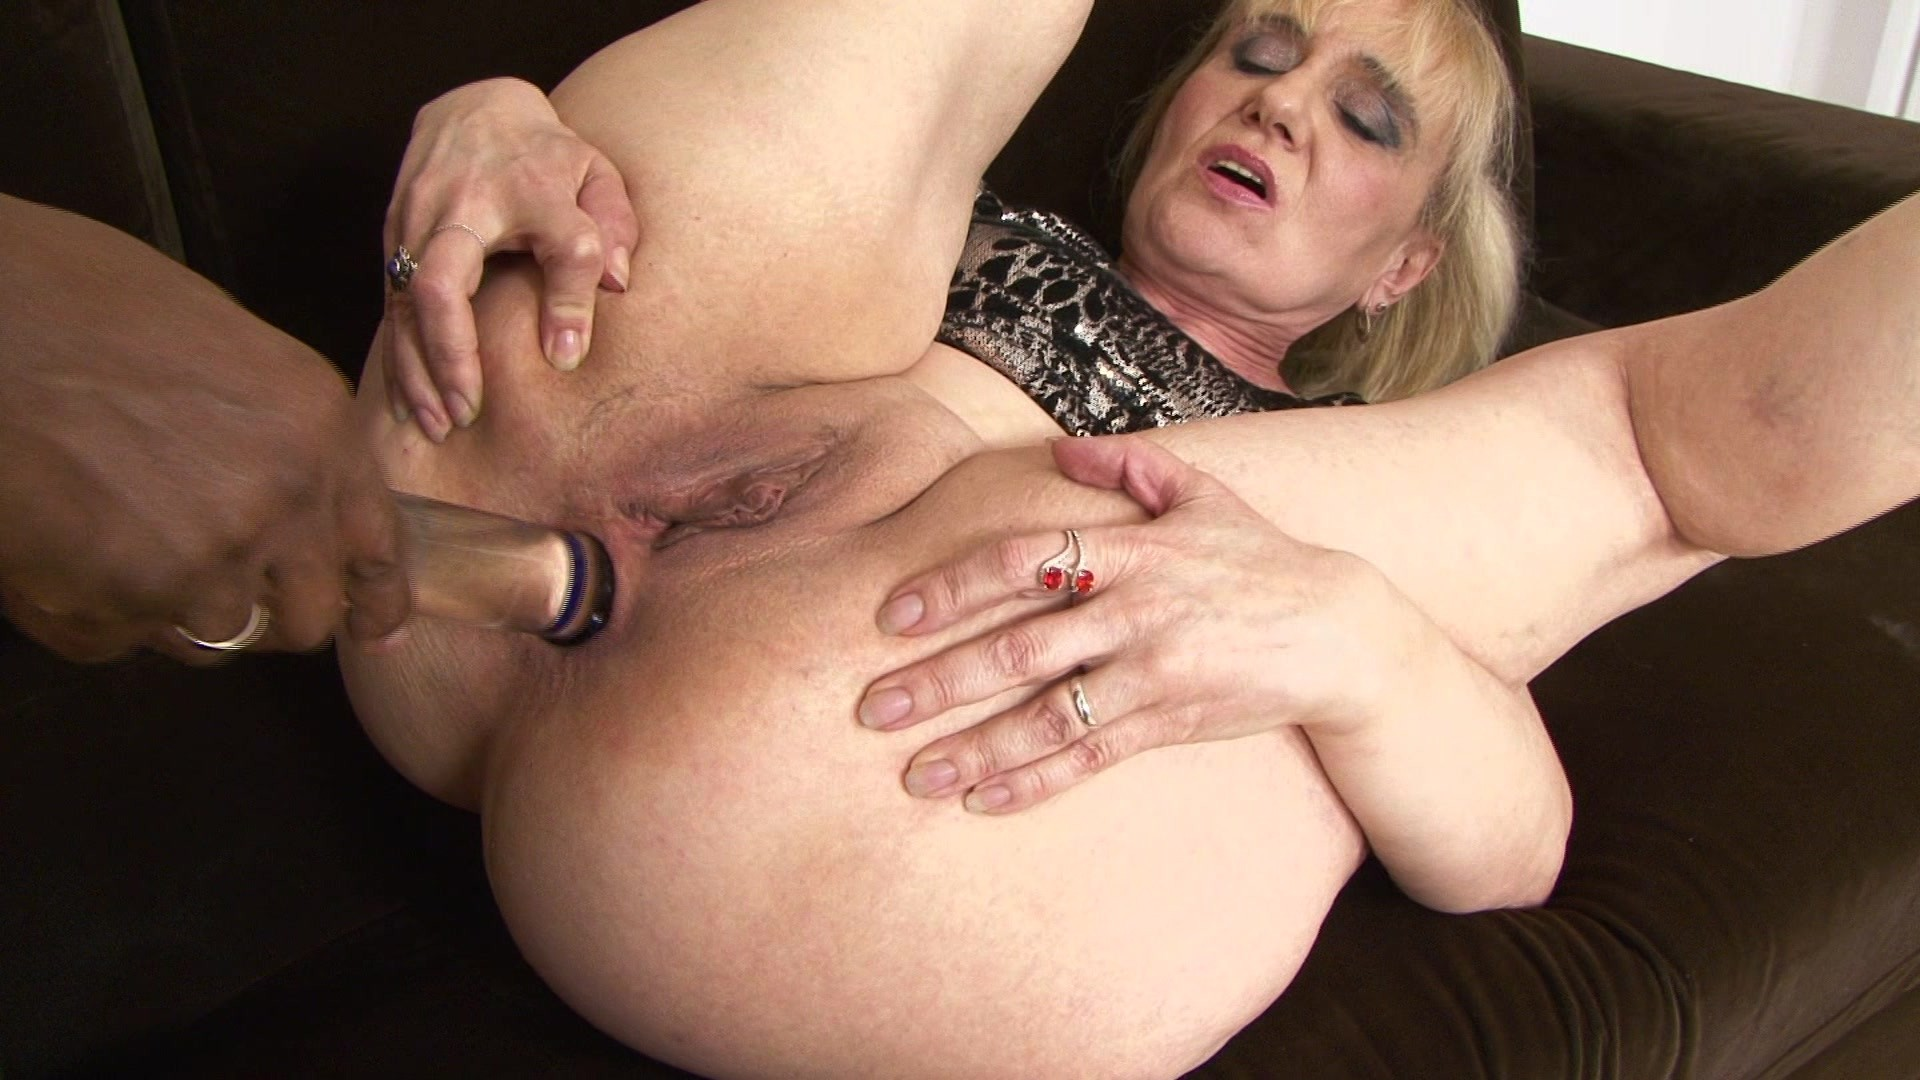 hairy-anal-granny-tumblr-twink-boy